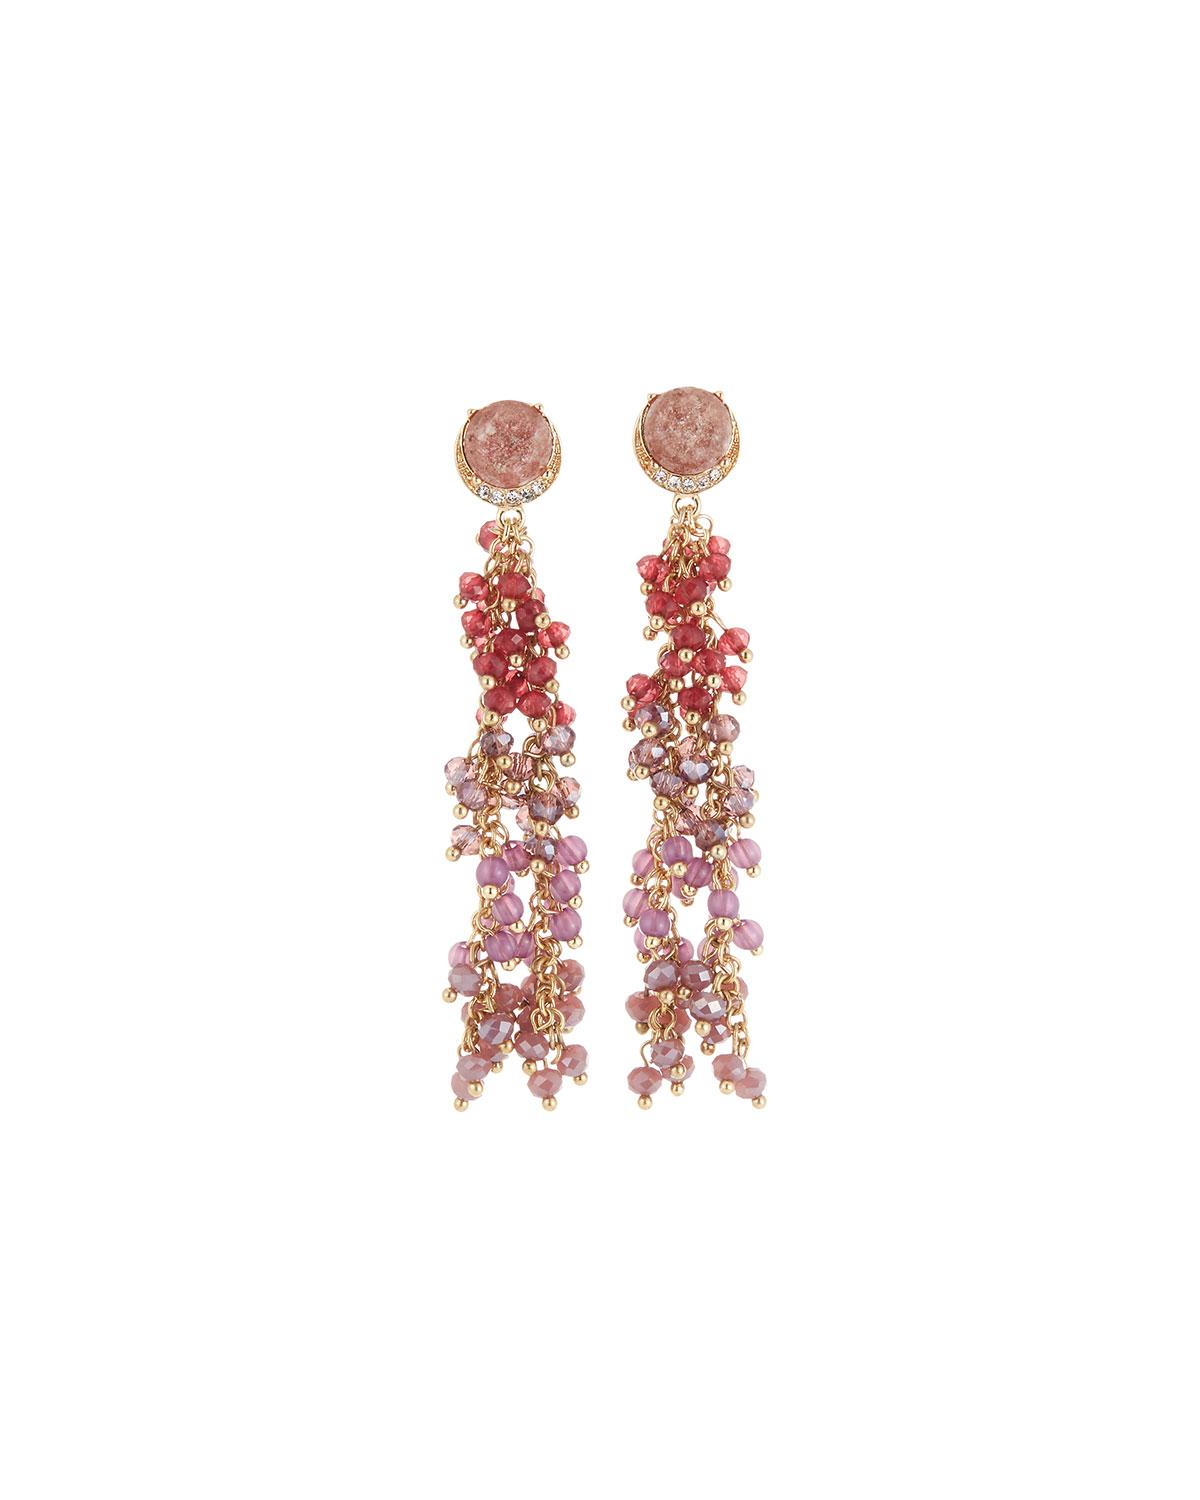 Lydell Nyc Multihued Beaded Linear Drop Earrings GxIomU